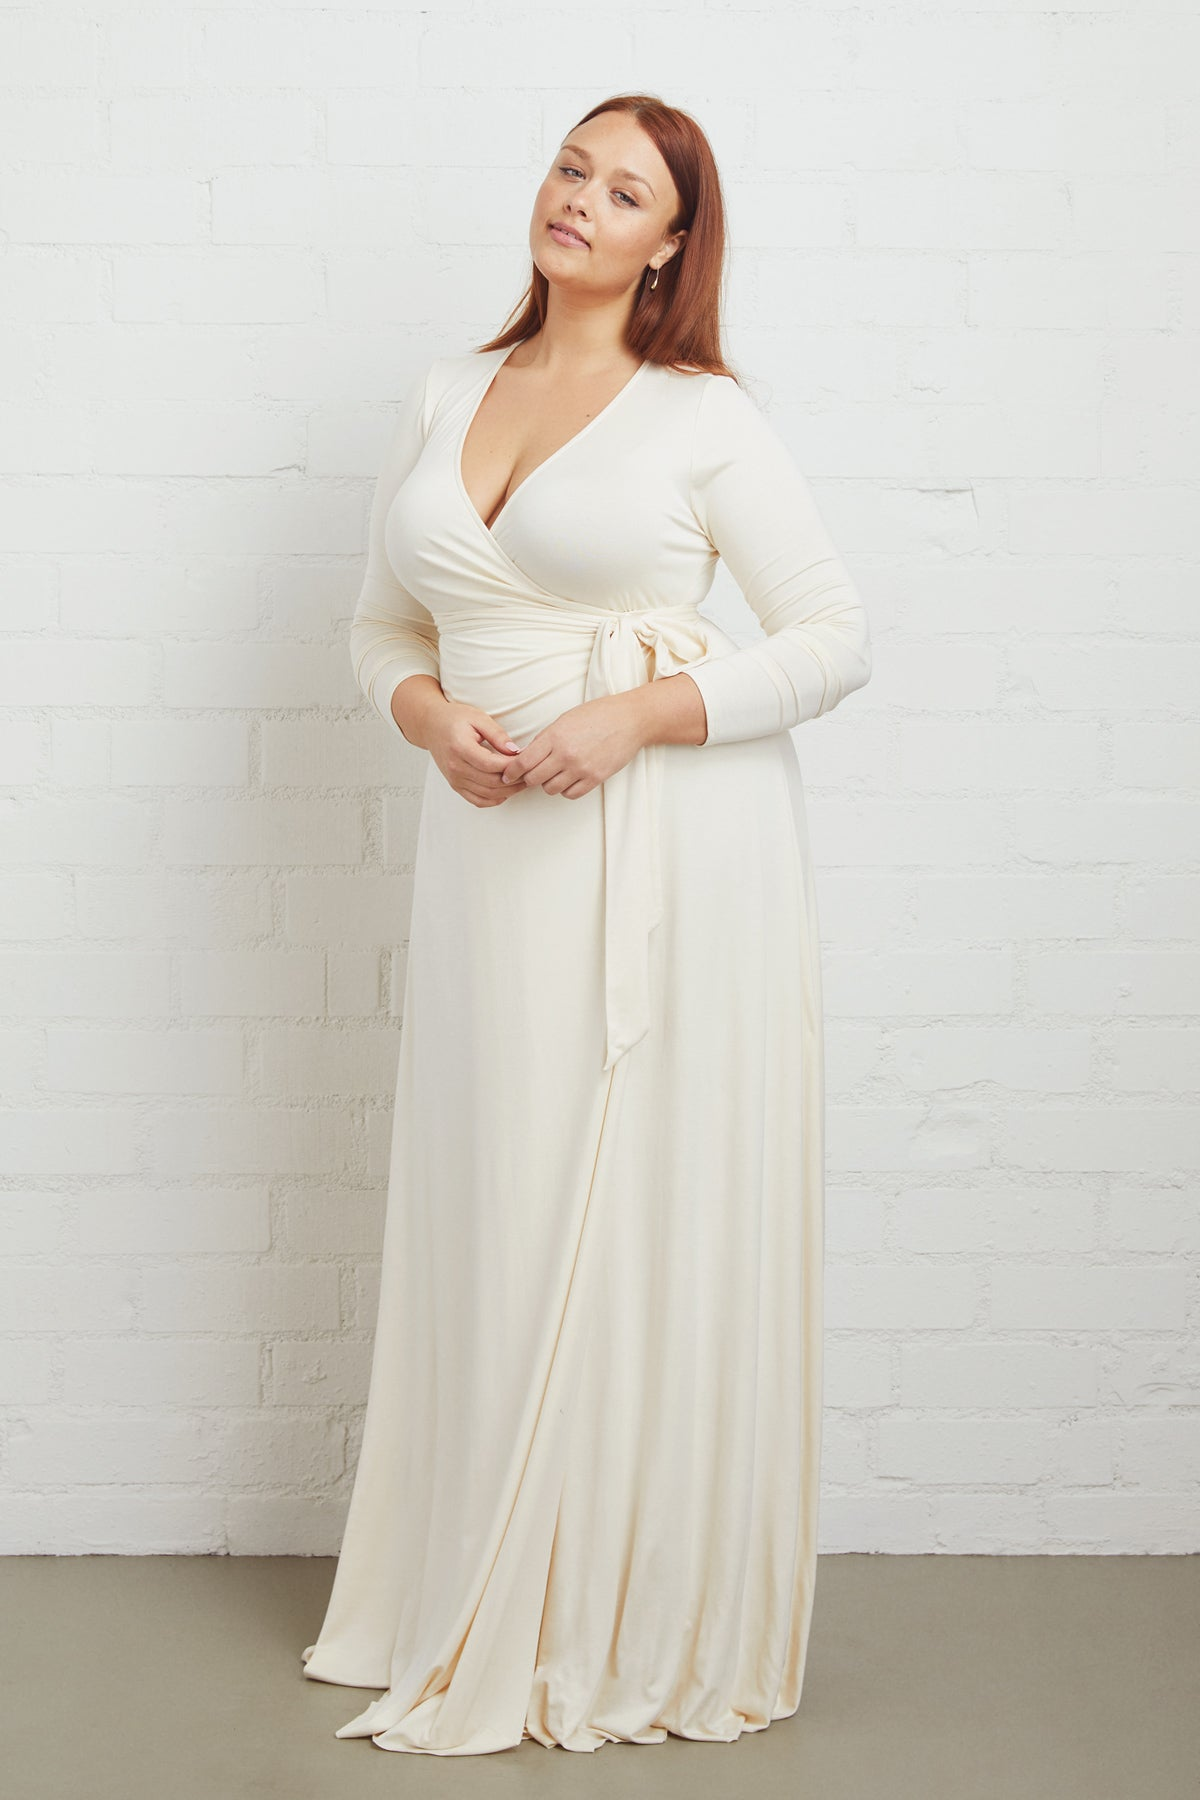 Harlow Wrap Dress - Cream, Plus Size